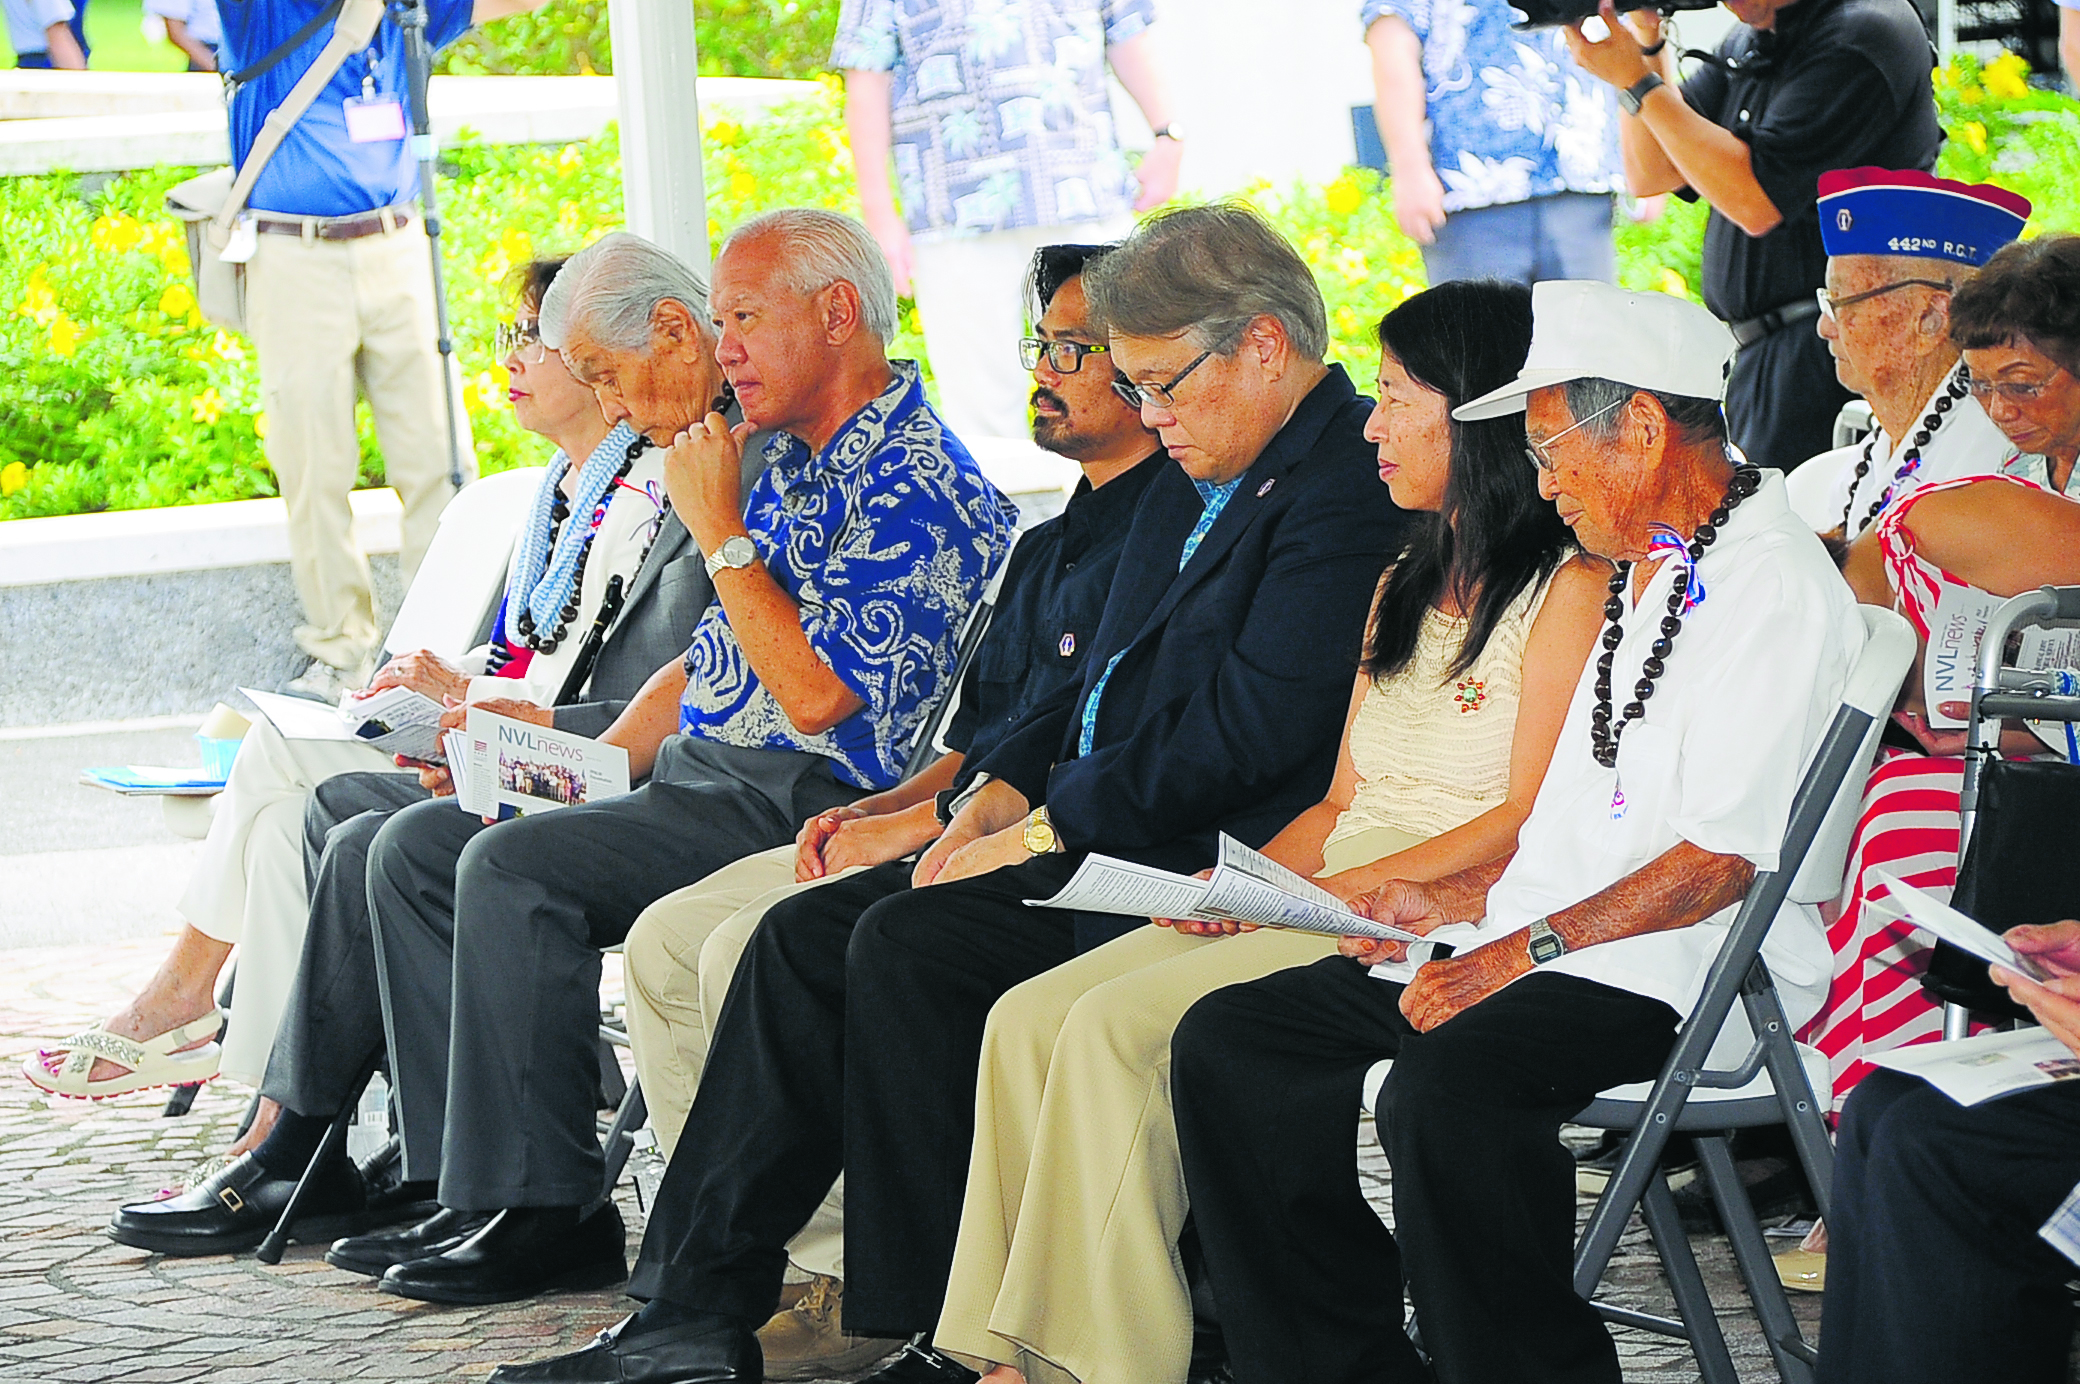 Representing the four World War II AJA veterans groups at the Joint Memorial Service were, from left: former first lady Jean Ariyoshi and former Gov. George Ariyoshi, a Military Intelligence Service veteran; state Rep. Gregg Takayama, son of a 1399th Engineer Construction Battalion veteran; James and Karl Okemura, grandson and son, respectively, of a 442nd Regimental Combat Team veteran; Tsurumi Hamasu, daughter of 100th Infantry Battalion veteran Mitsuo Hamasu; and 100th Infantry Battalion veteran Masaharu Saito.